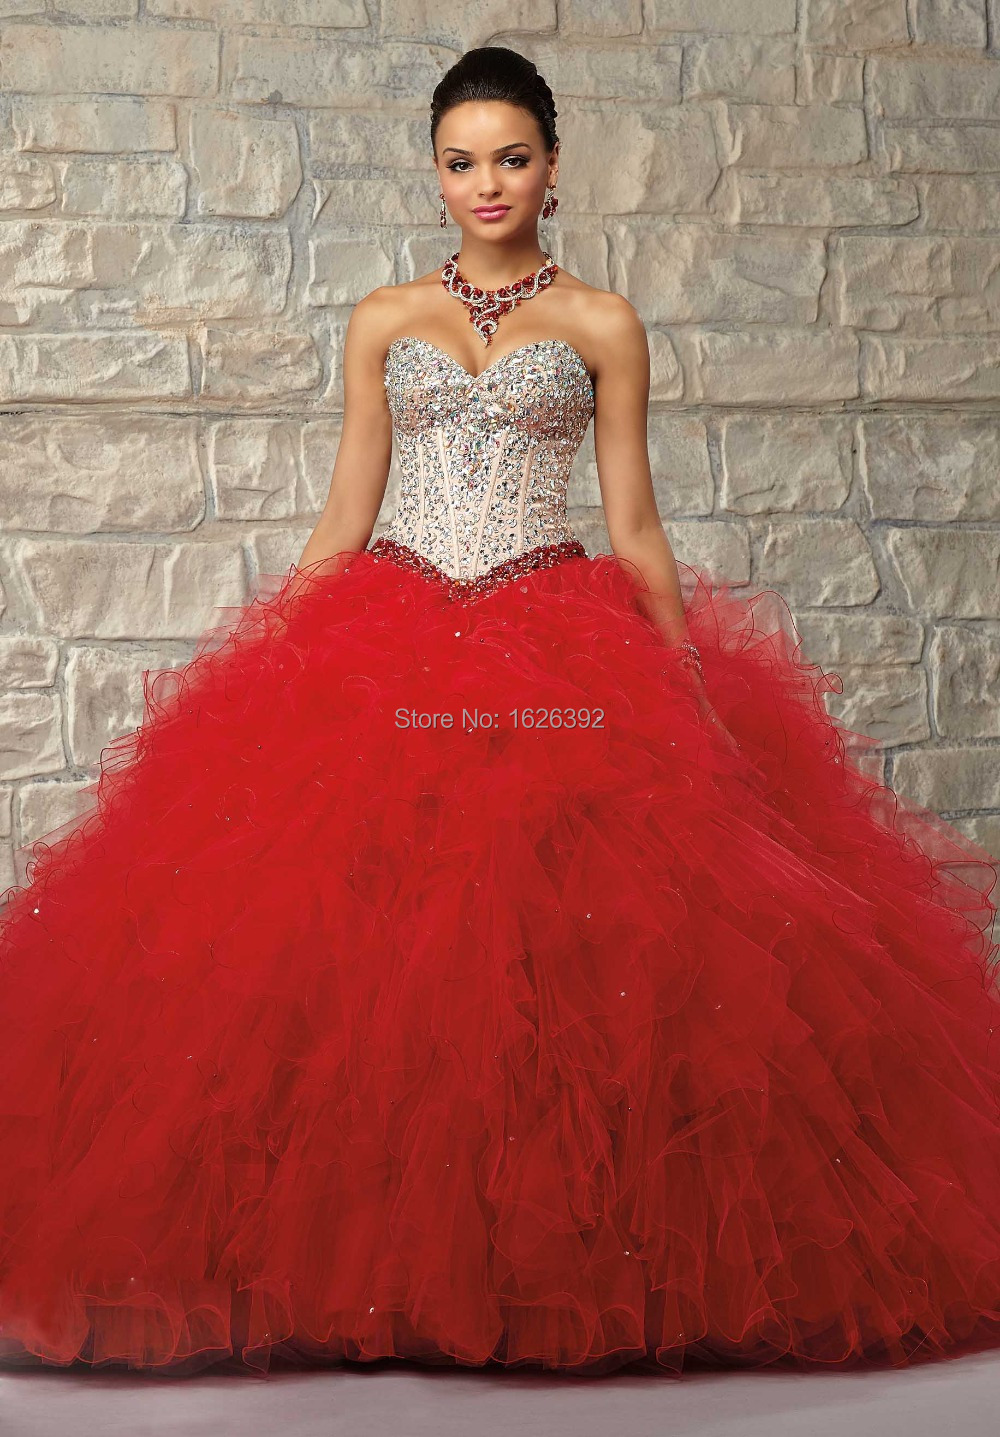 Compare Prices on Long Red Sweet 16 Dresses- Online Shopping/Buy ...